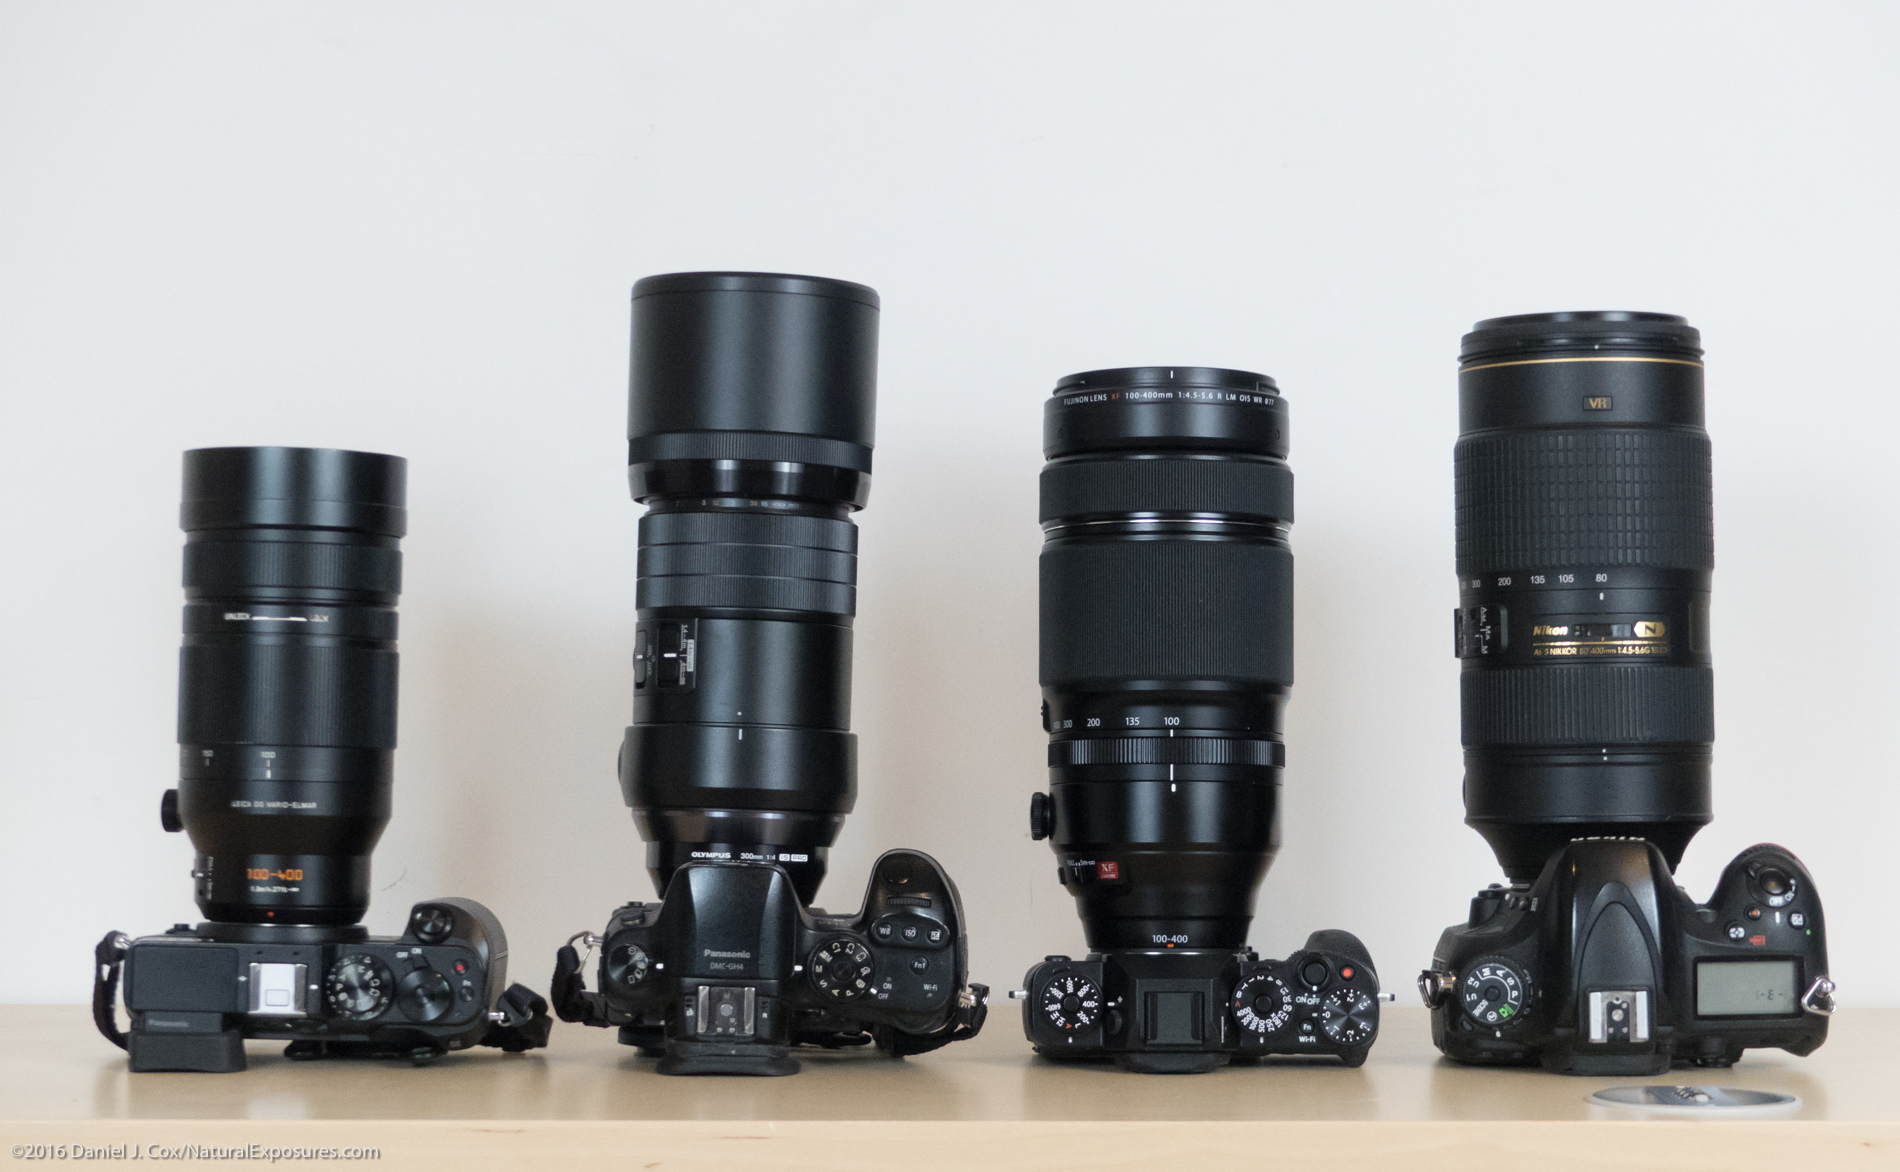 From left to right is the Lumix GX8 with Leica 100-400mm, Lumix GH4 with Olympus 300mm F/4, Fuji XT2 with 100-400mm and Nikon D600 with 80-400mm.